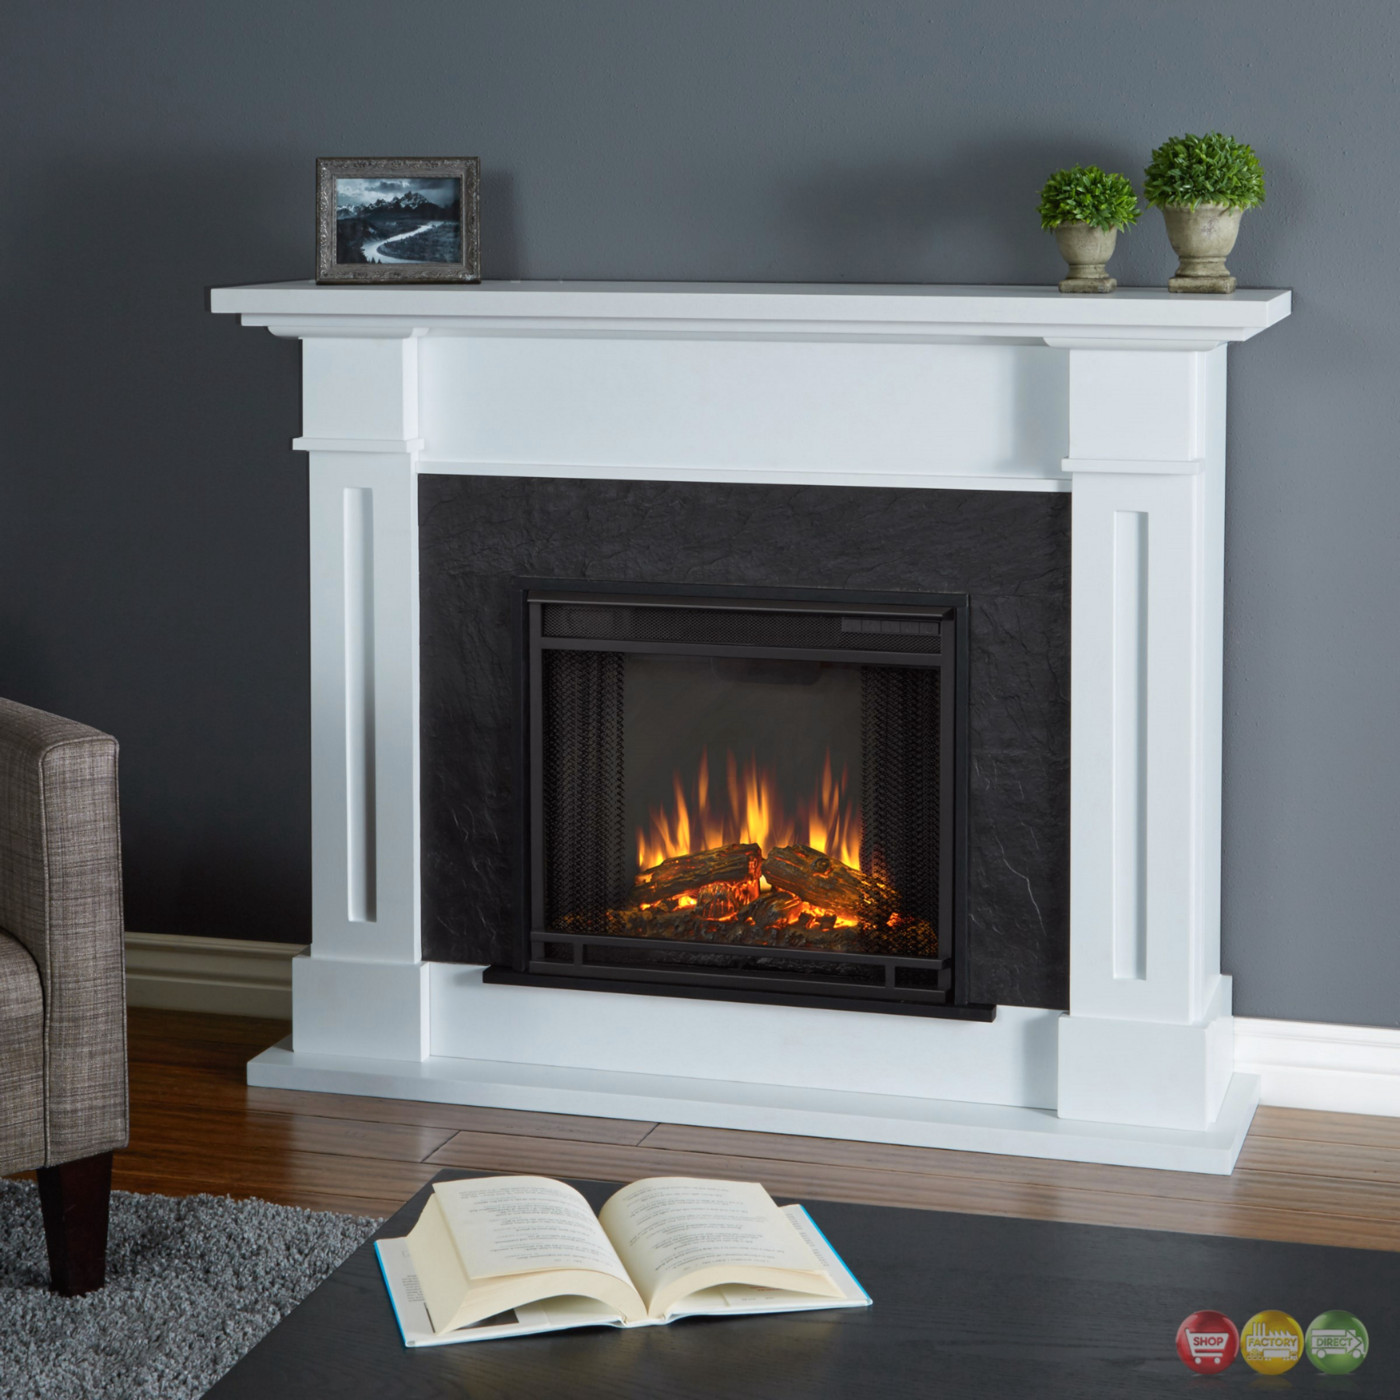 Kipling electric heater led fireplace in white 4700btu 54x42 for Small fake fireplace